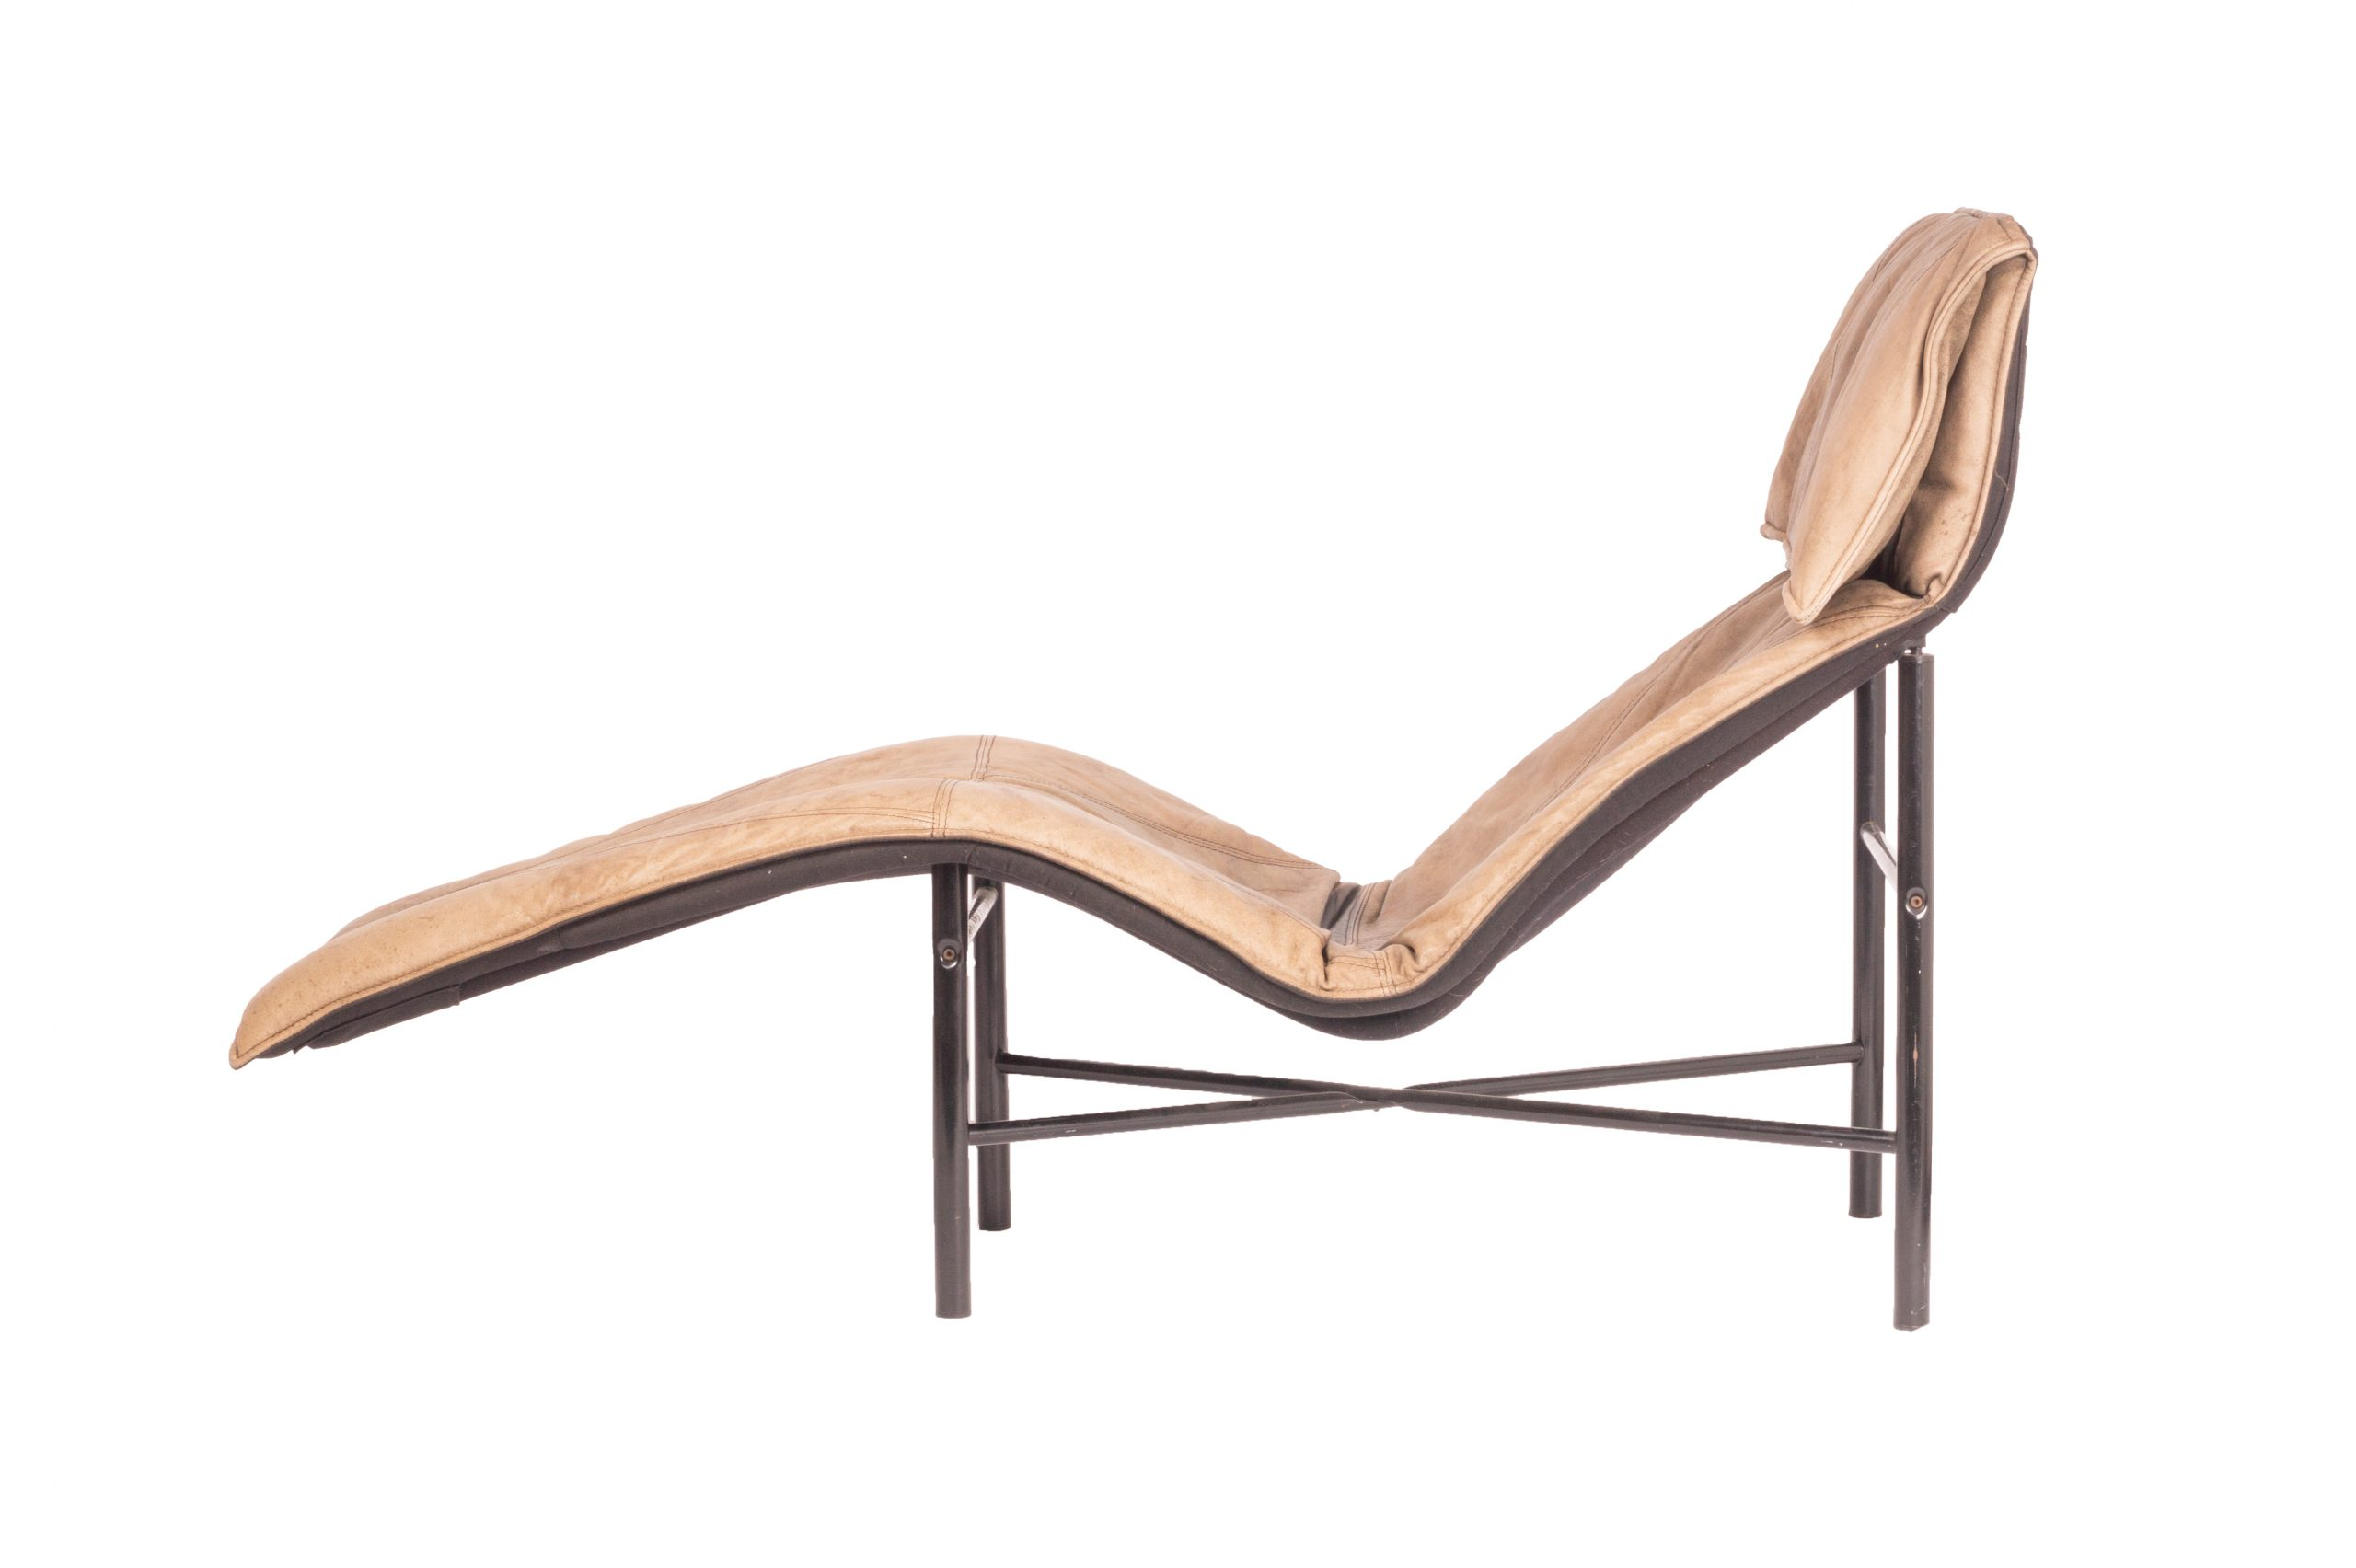 skye chaise by tord bjorklund for ikea